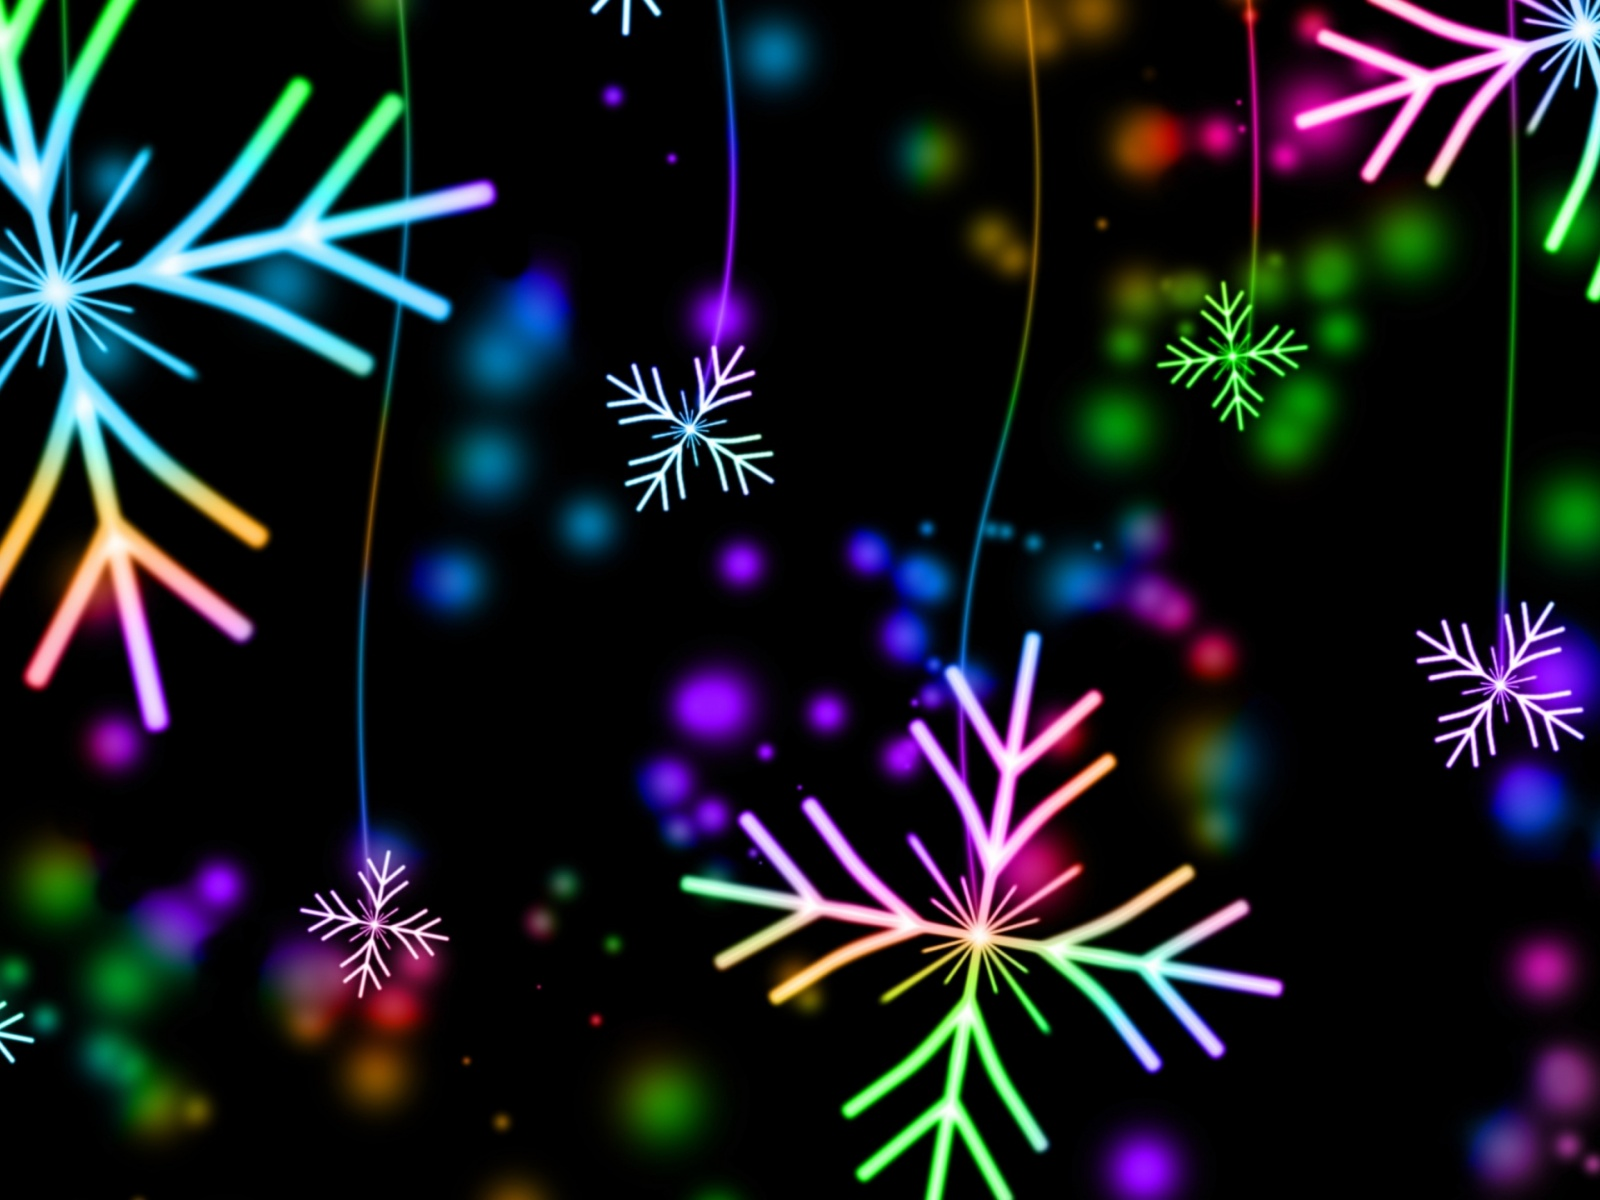 1600x1200 snowflakes, colorful, glare